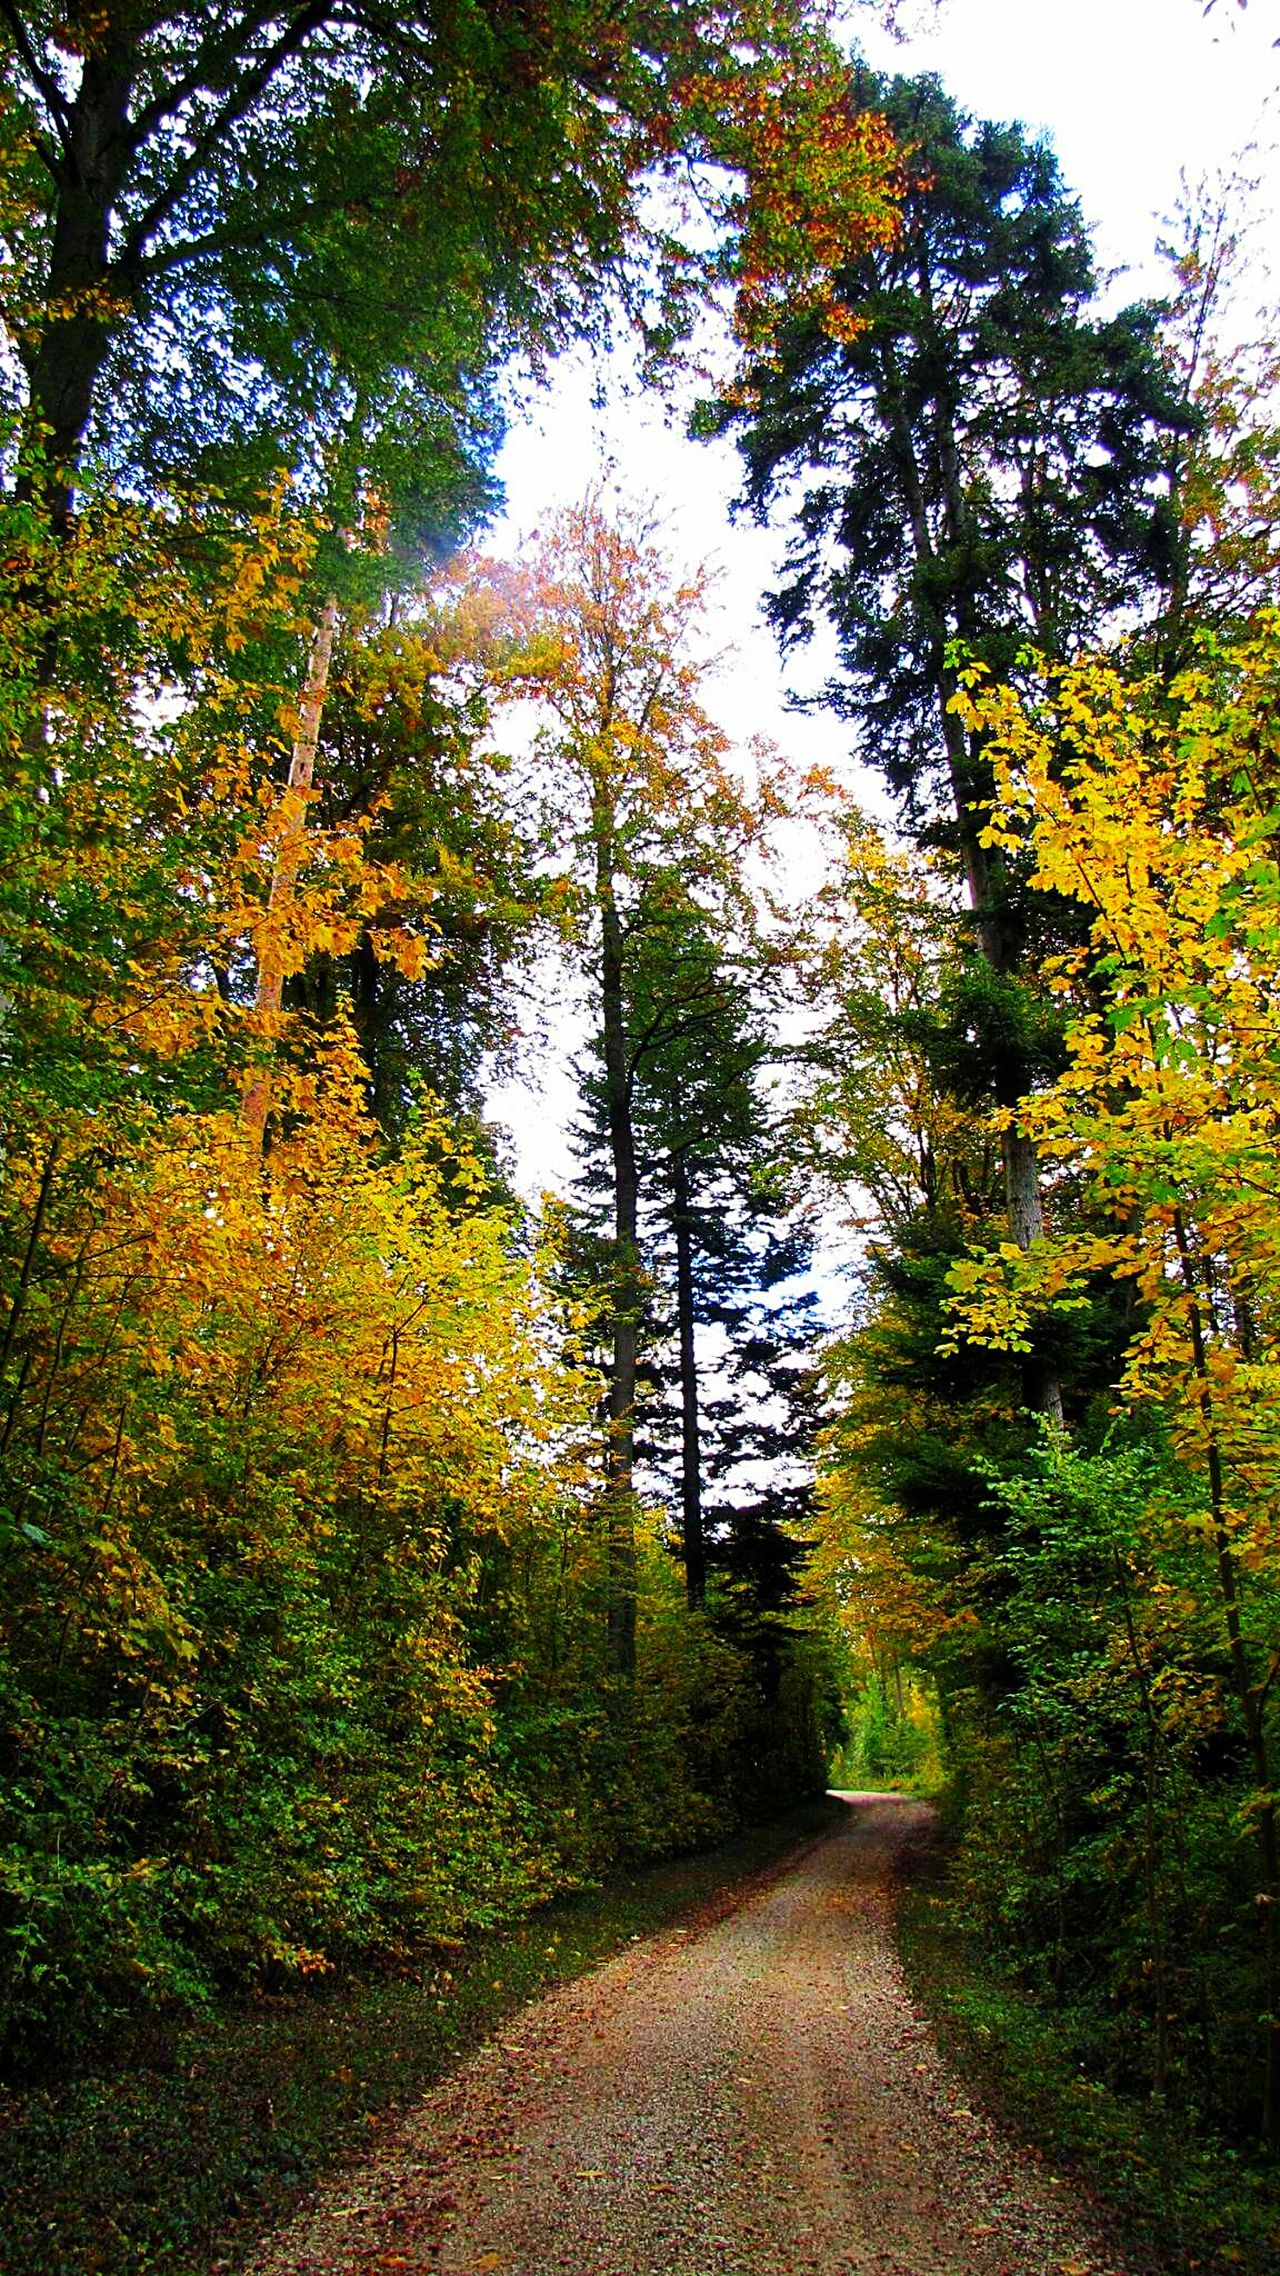 Go for a walk, side by side with my faithful dog. Enjoy the spirits of nature and strenghten myself again Tree Nature Outdoors Beauty In Nature Goodforthesoul Thinkpositive Lovethenature Autmn☺ Adventure The Way Forward Power In Nature Forestwalk Dreambig Autmn Trees WoodLand Autmncolors Thinking About Life Thinkpositve Lifetree